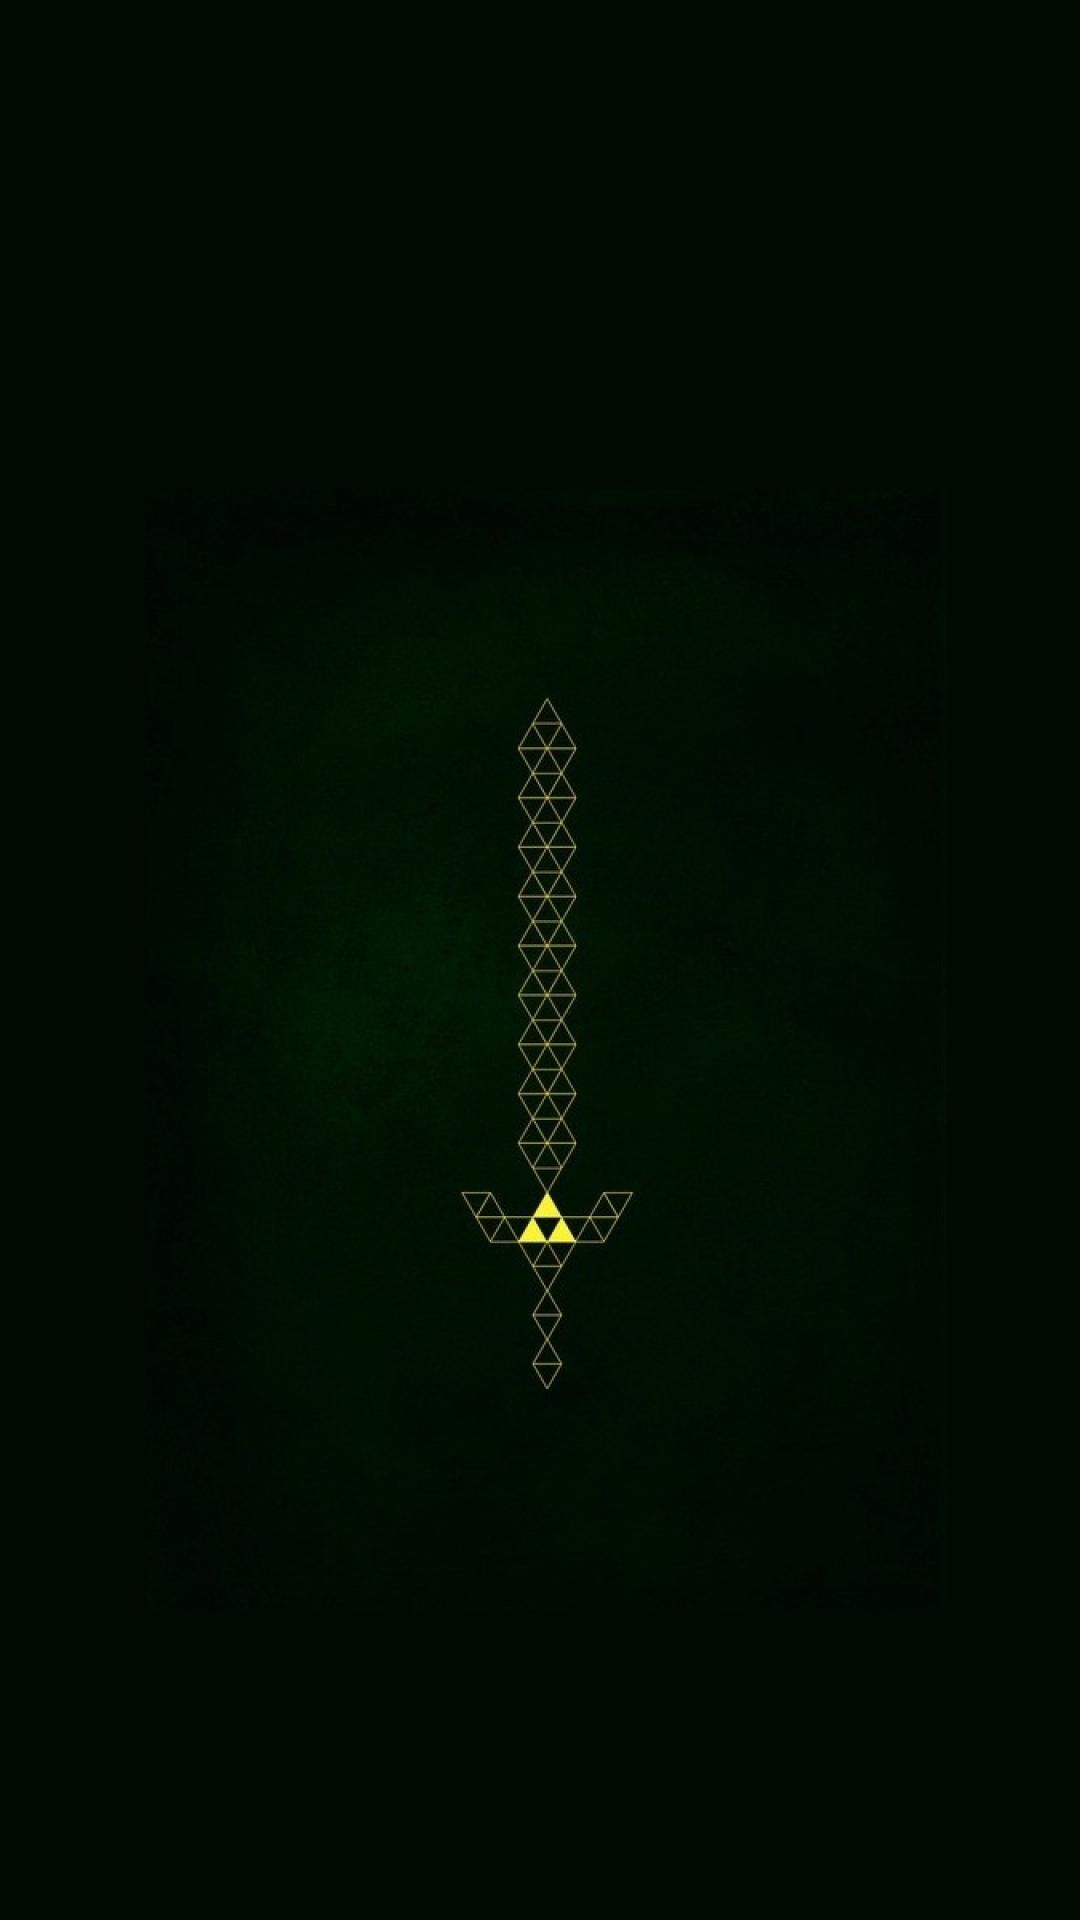 1080x1920 The Master Sword by sirneko